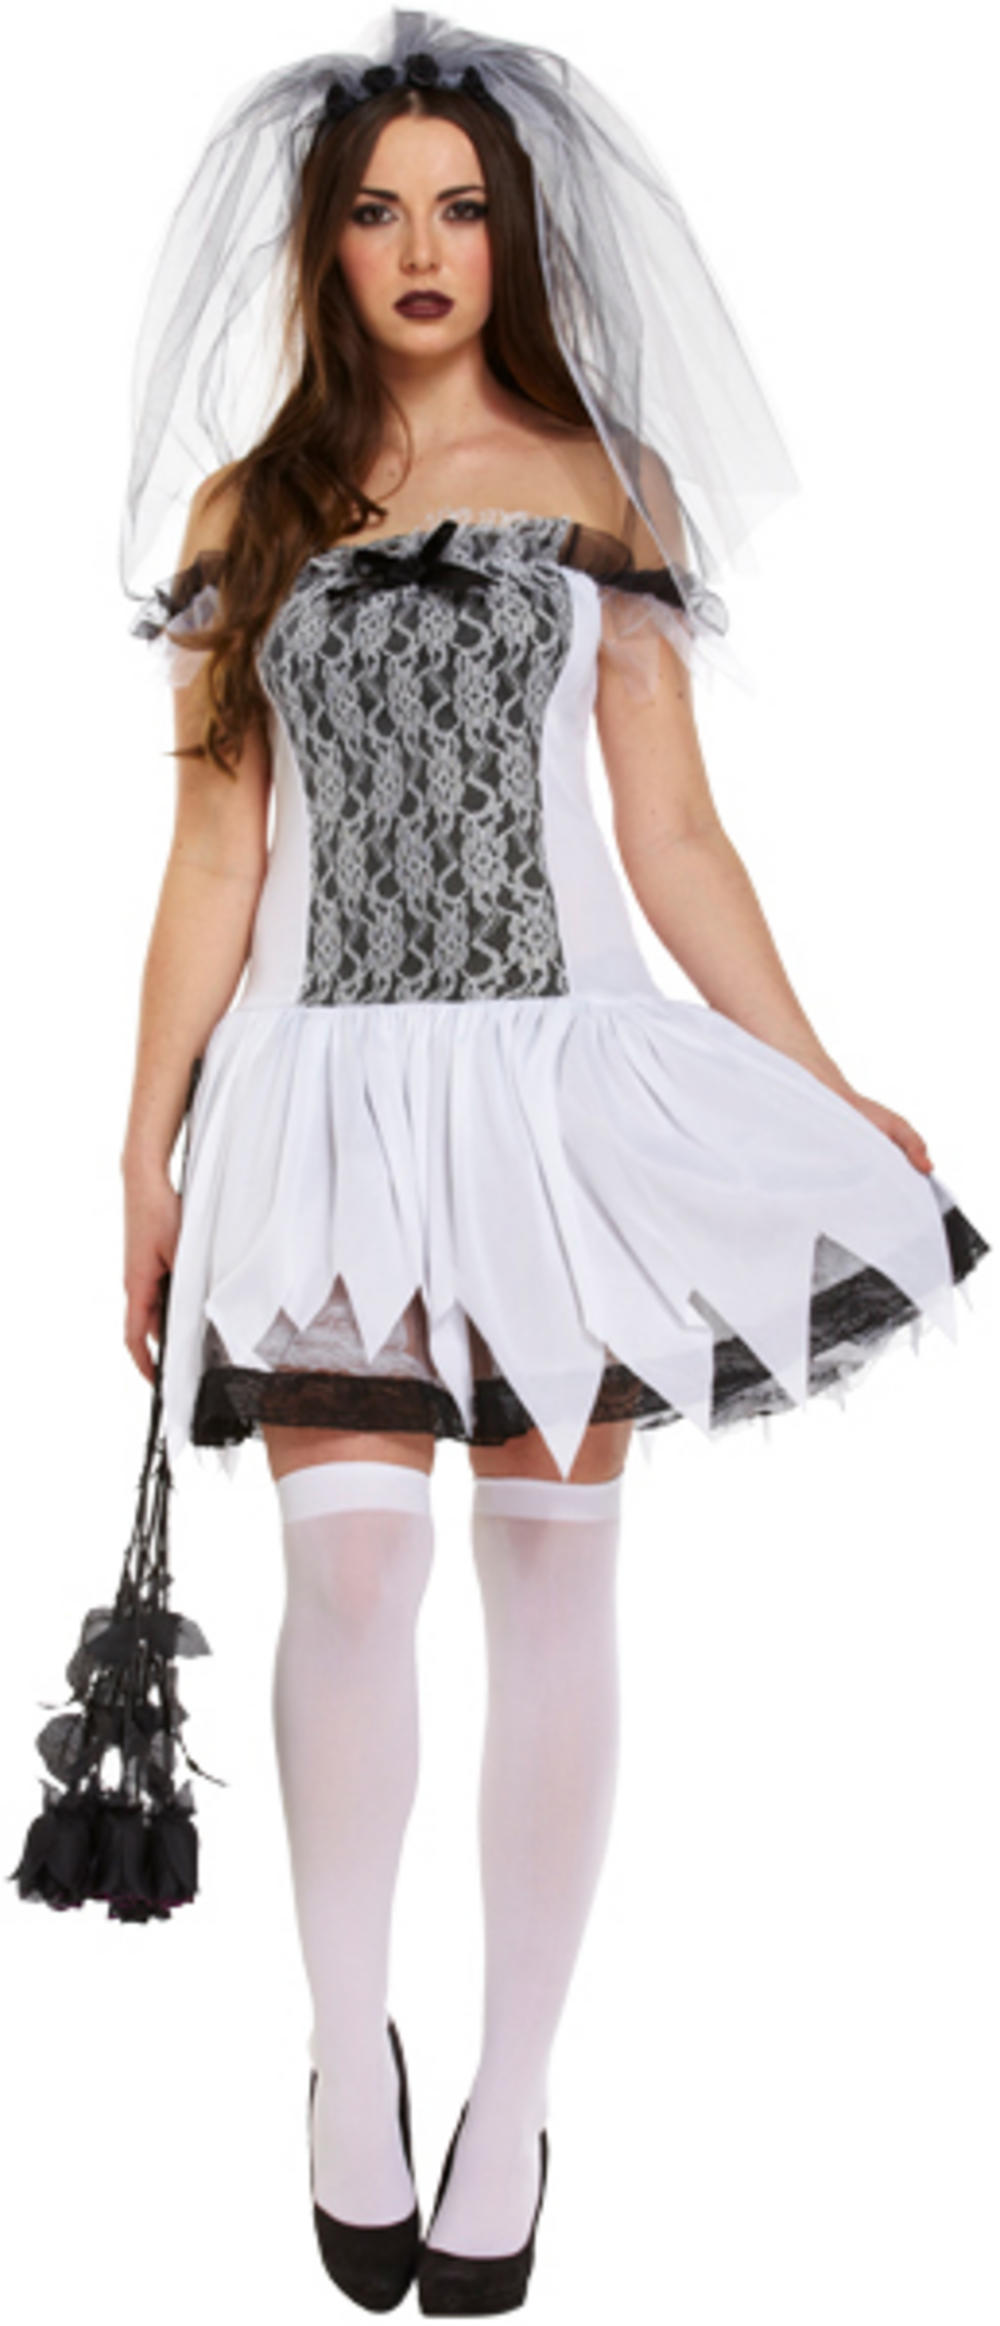 Undead Teen Bride Ladies Costume  All Ladies Halloween -5197